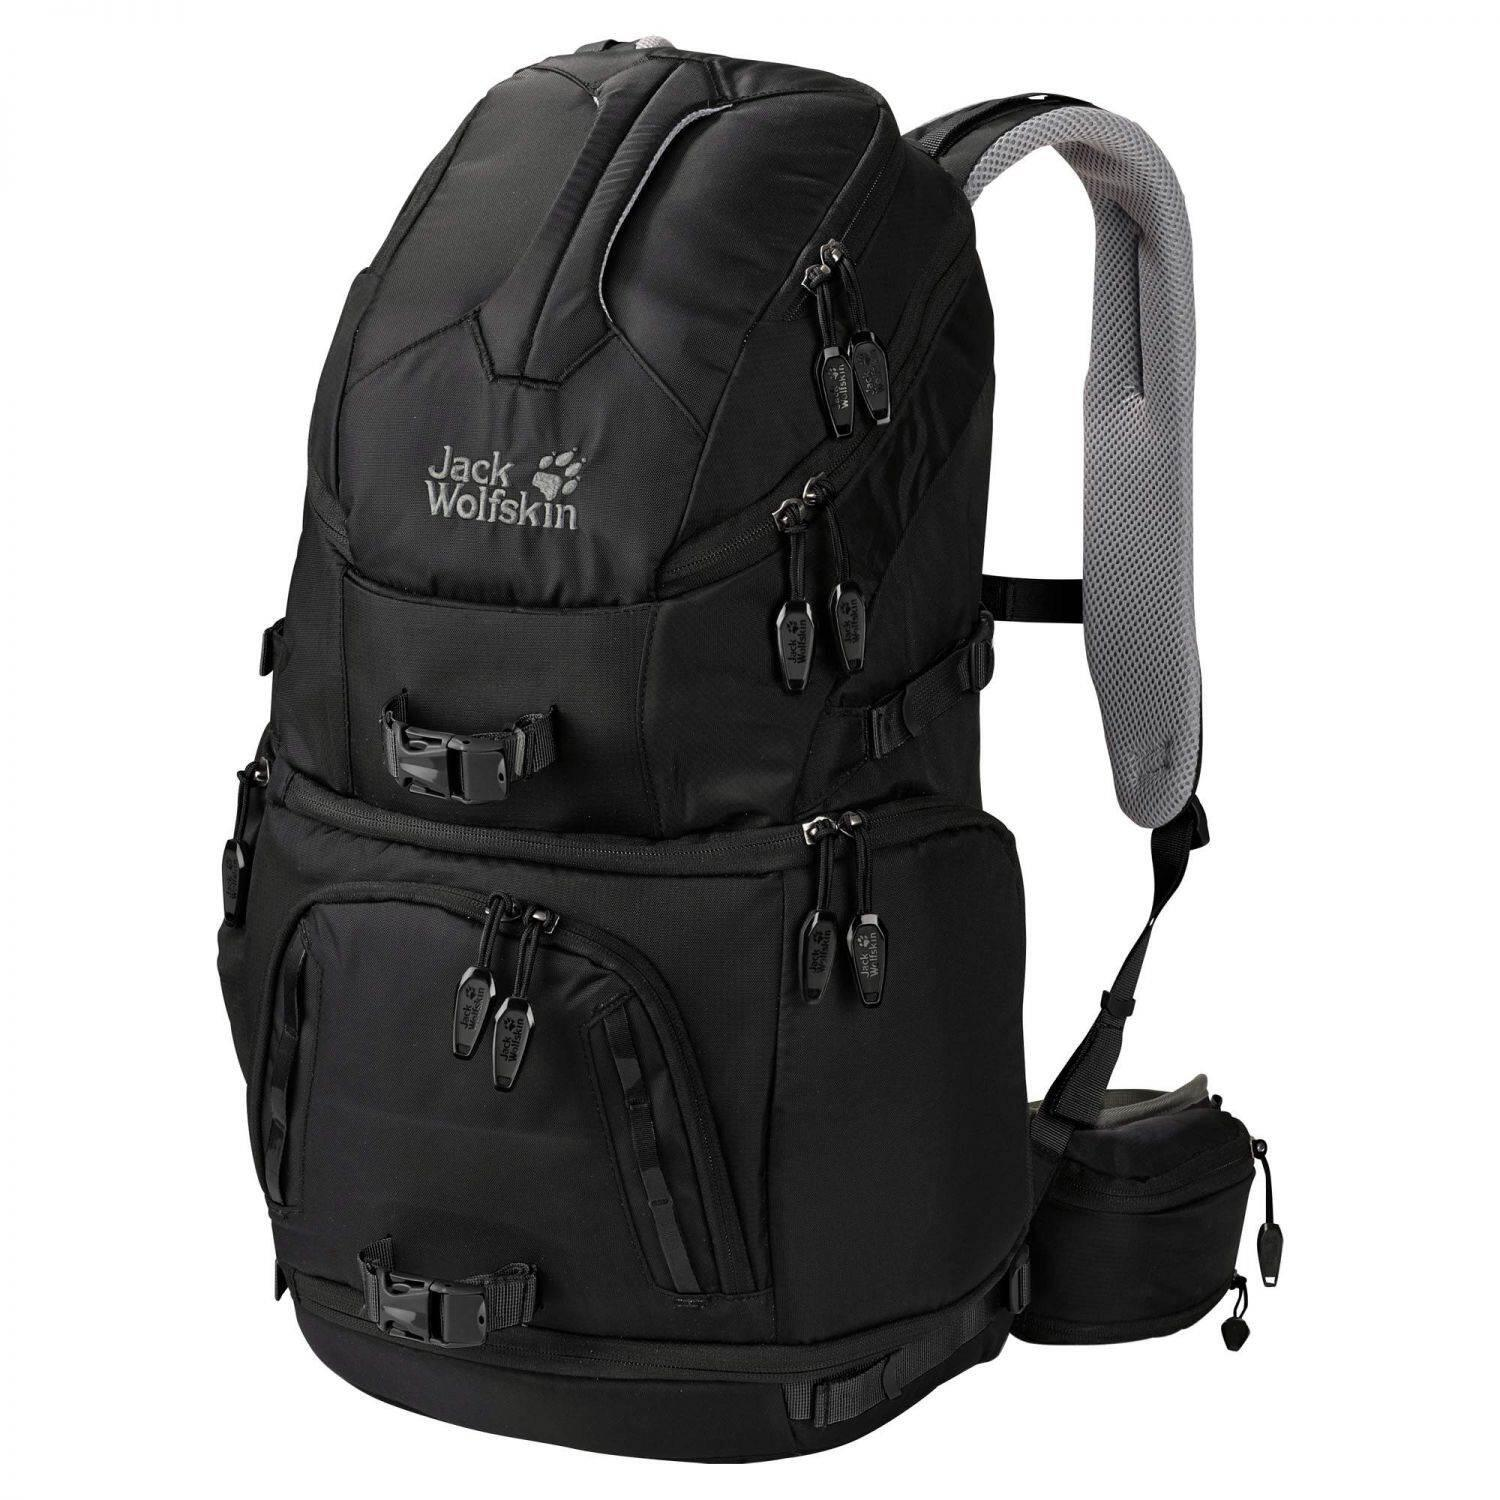 jack-wolfskin-acs-photo-pack-pro-rucksack-farbe-6000-black-